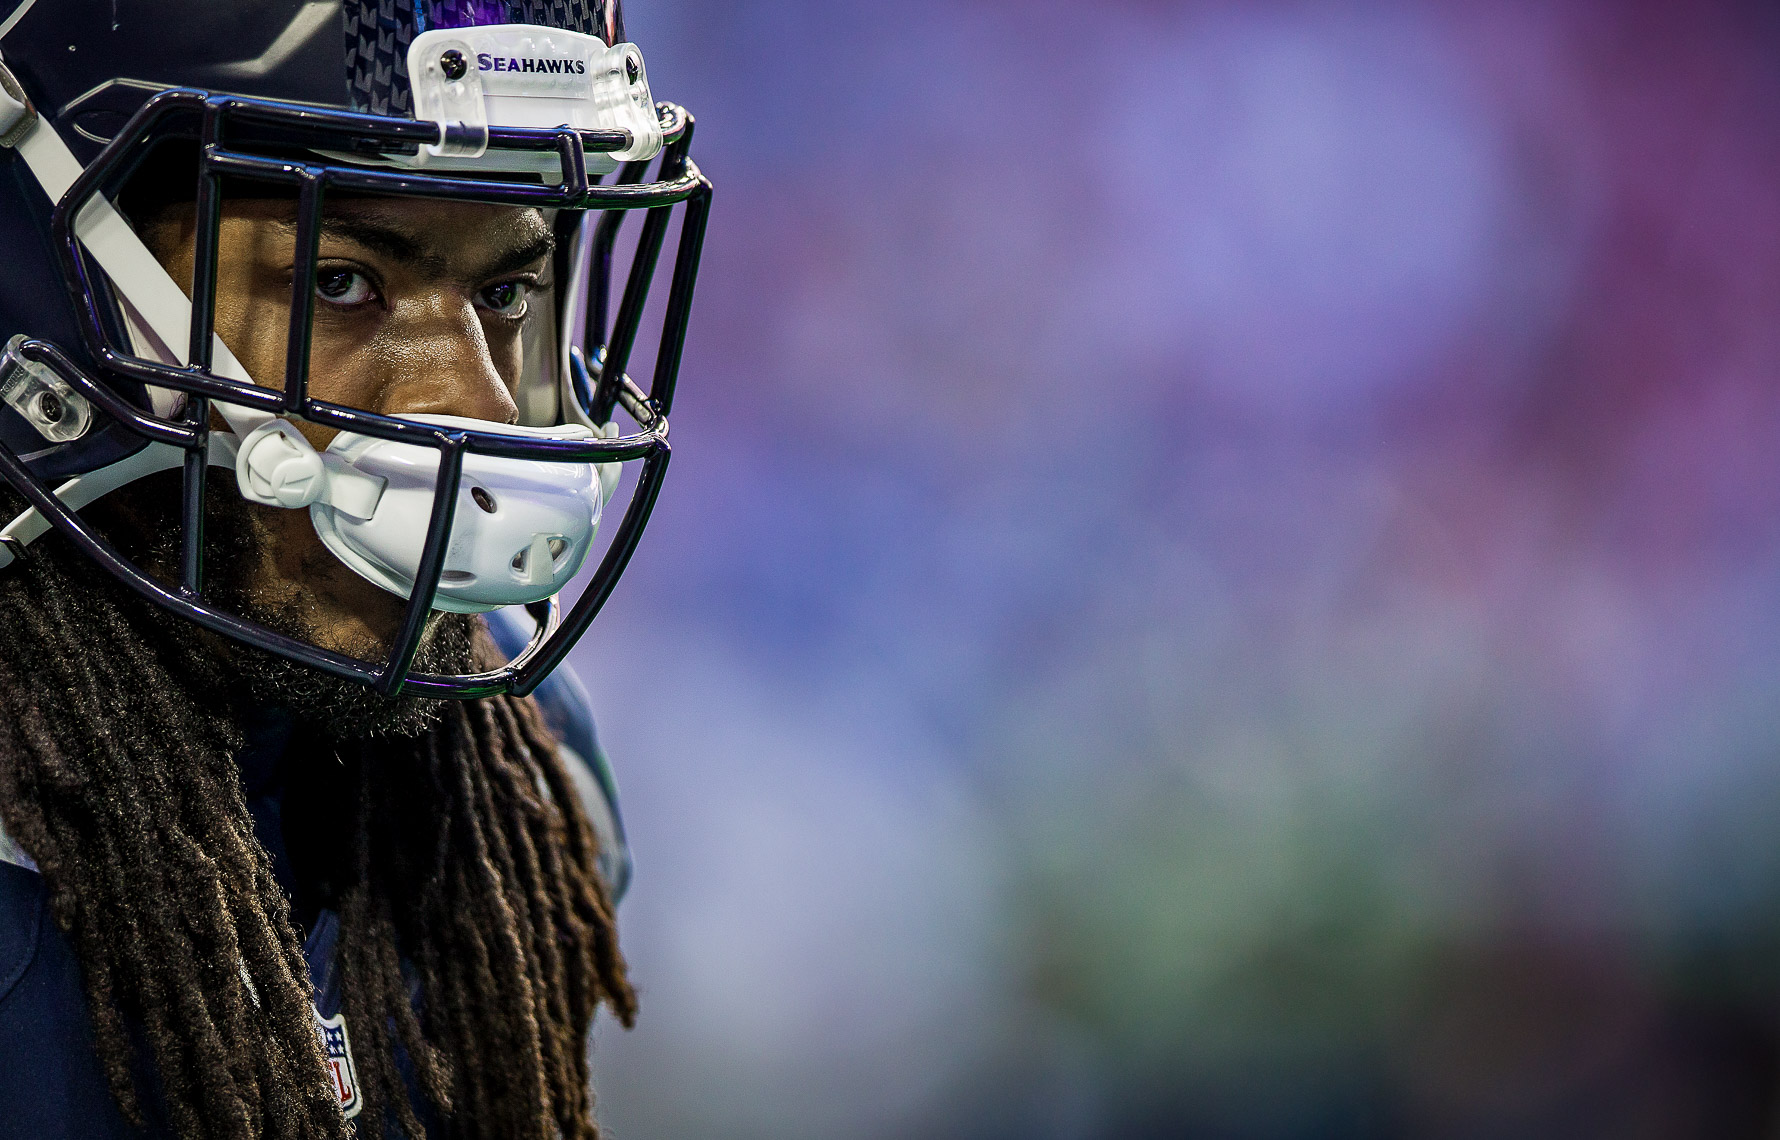 superbowl22  Best Super Bowl XLIX 49 photos between Seattle Seahawks and New England Patriots Richard Sherman photos